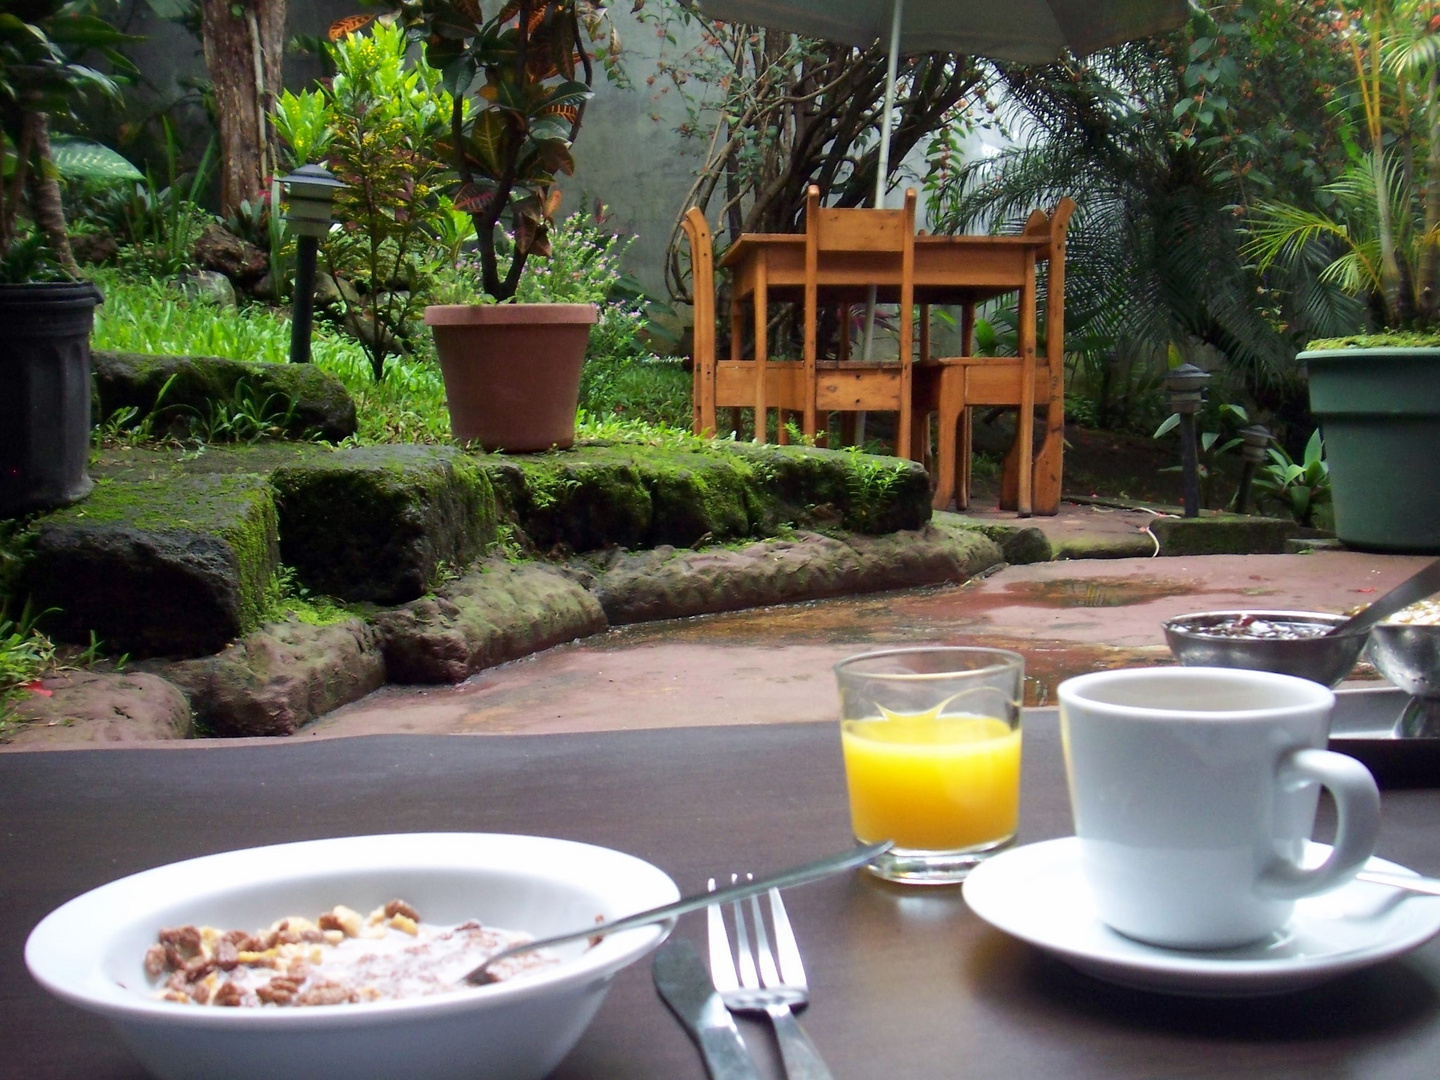 Breakfast in Costa Rica